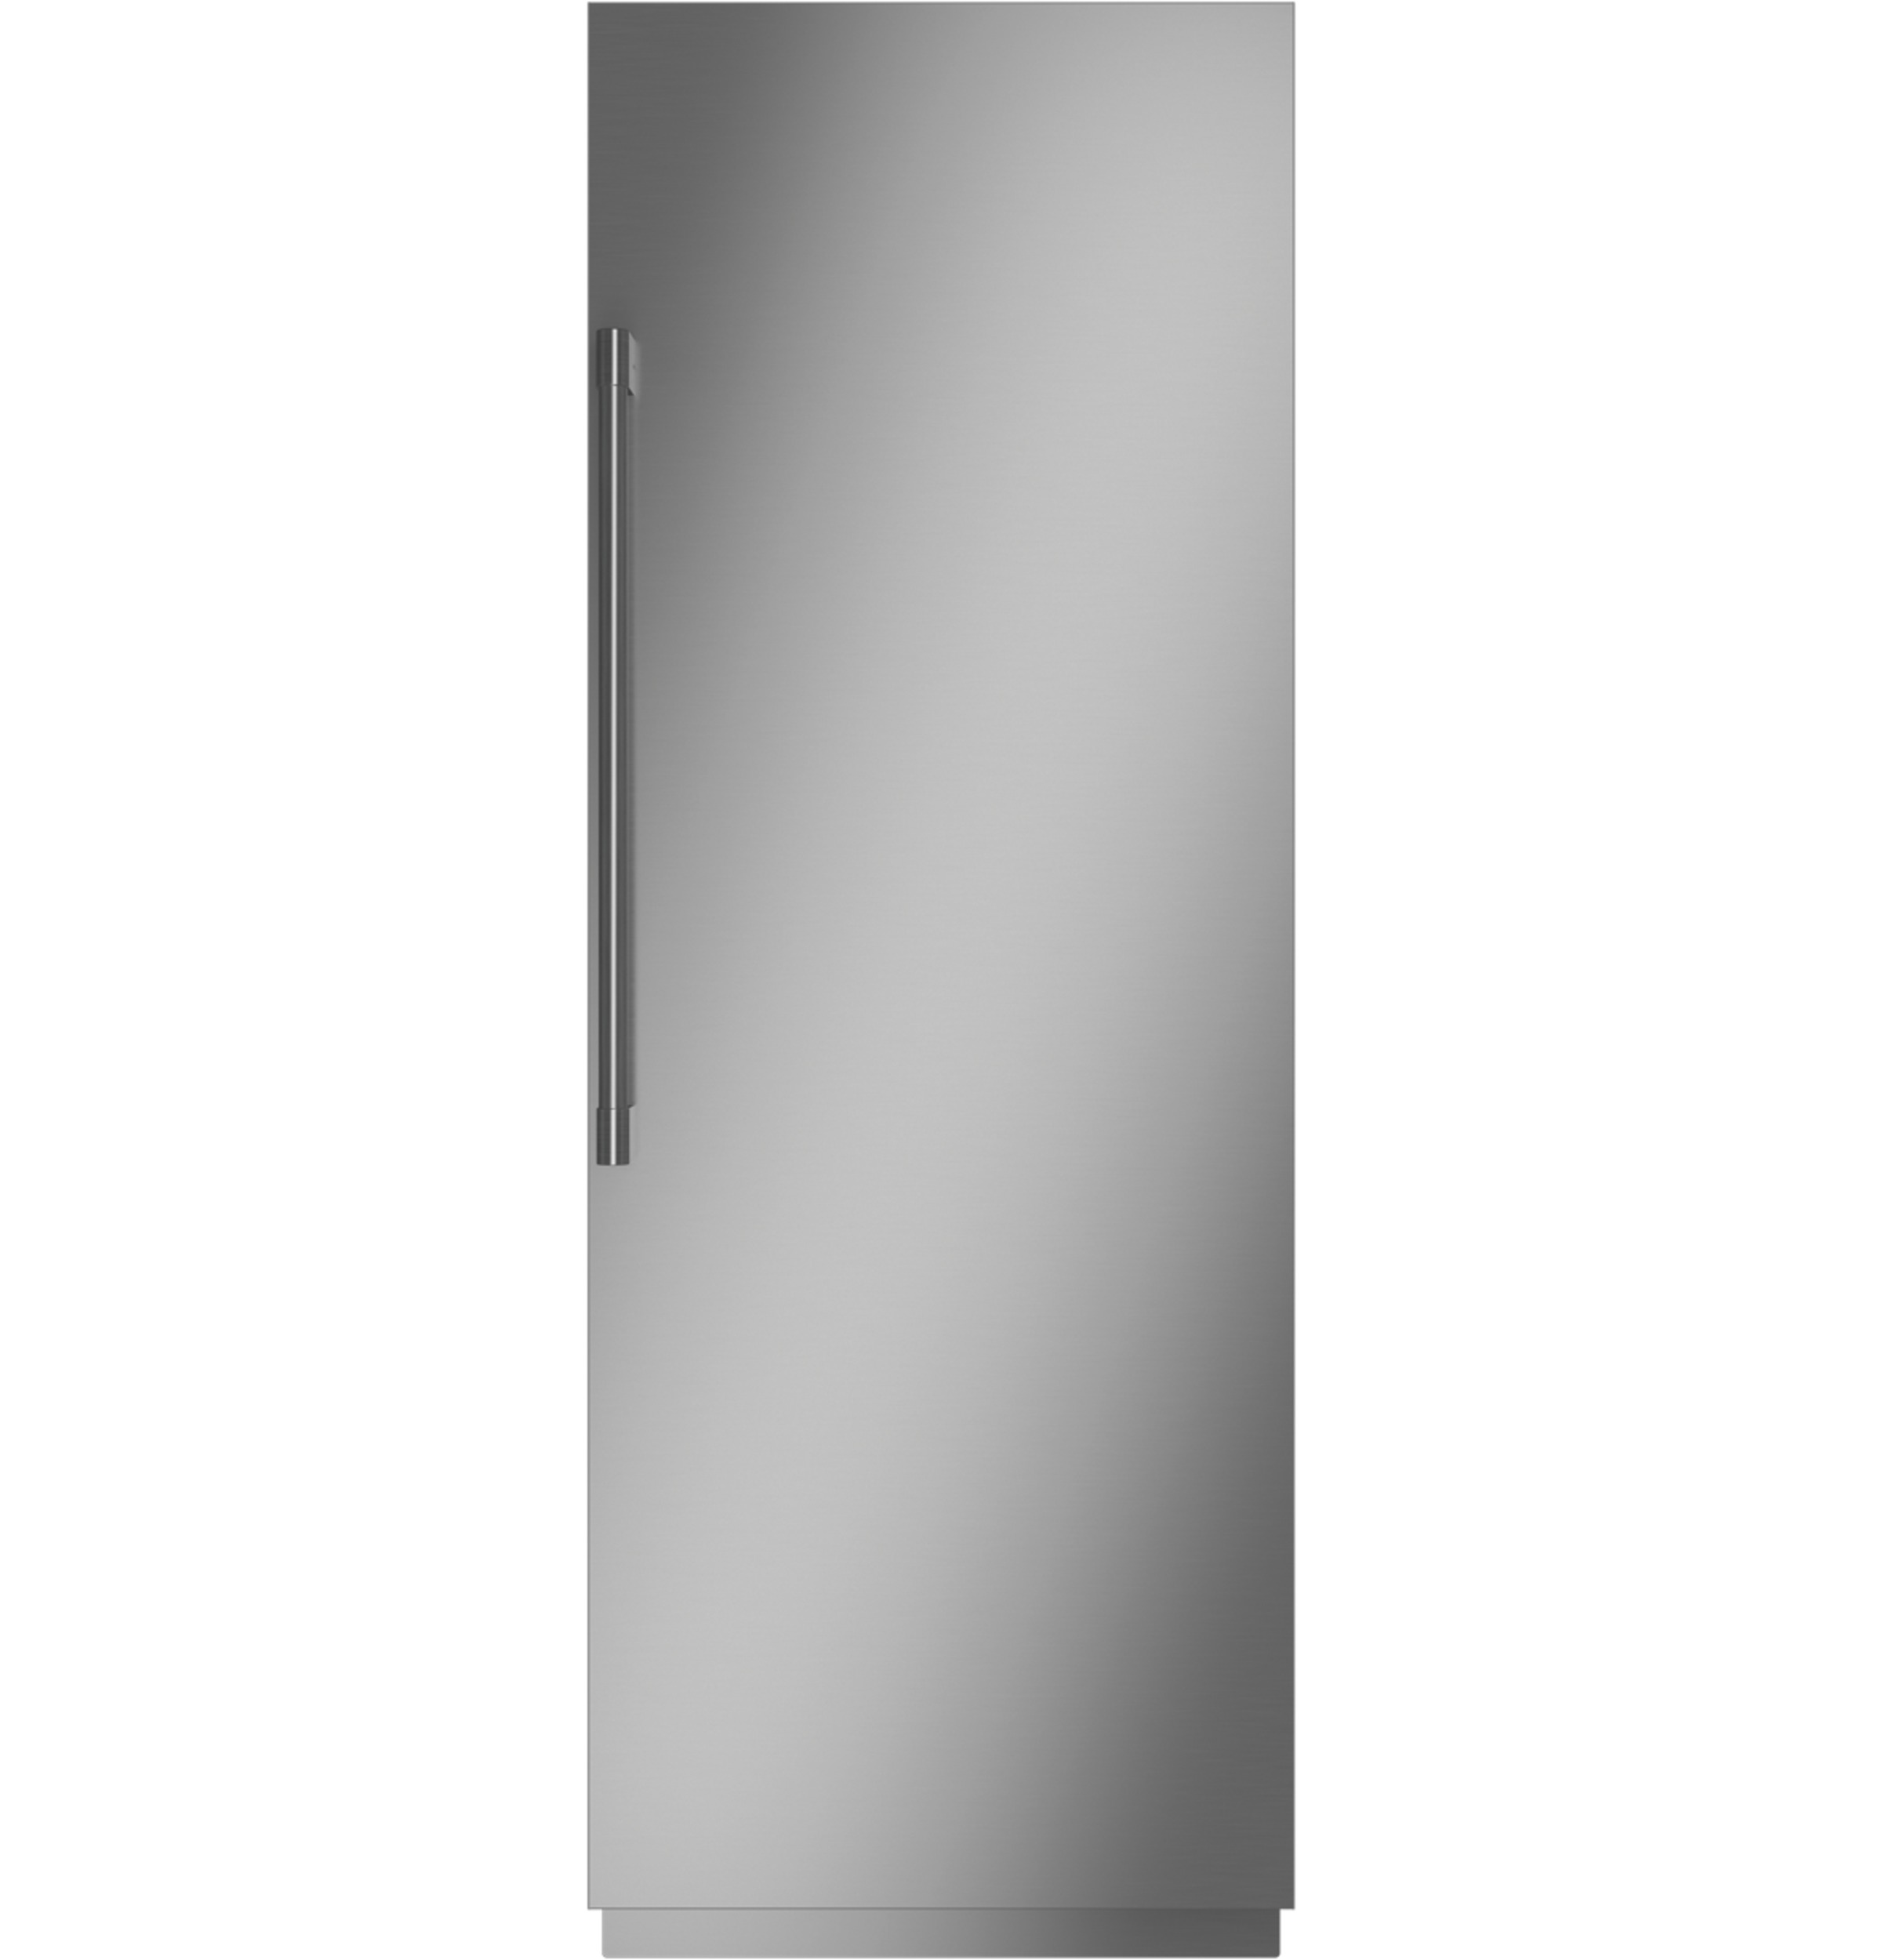 "Monogram Monogram 30"" Integrated Column Refrigerator"